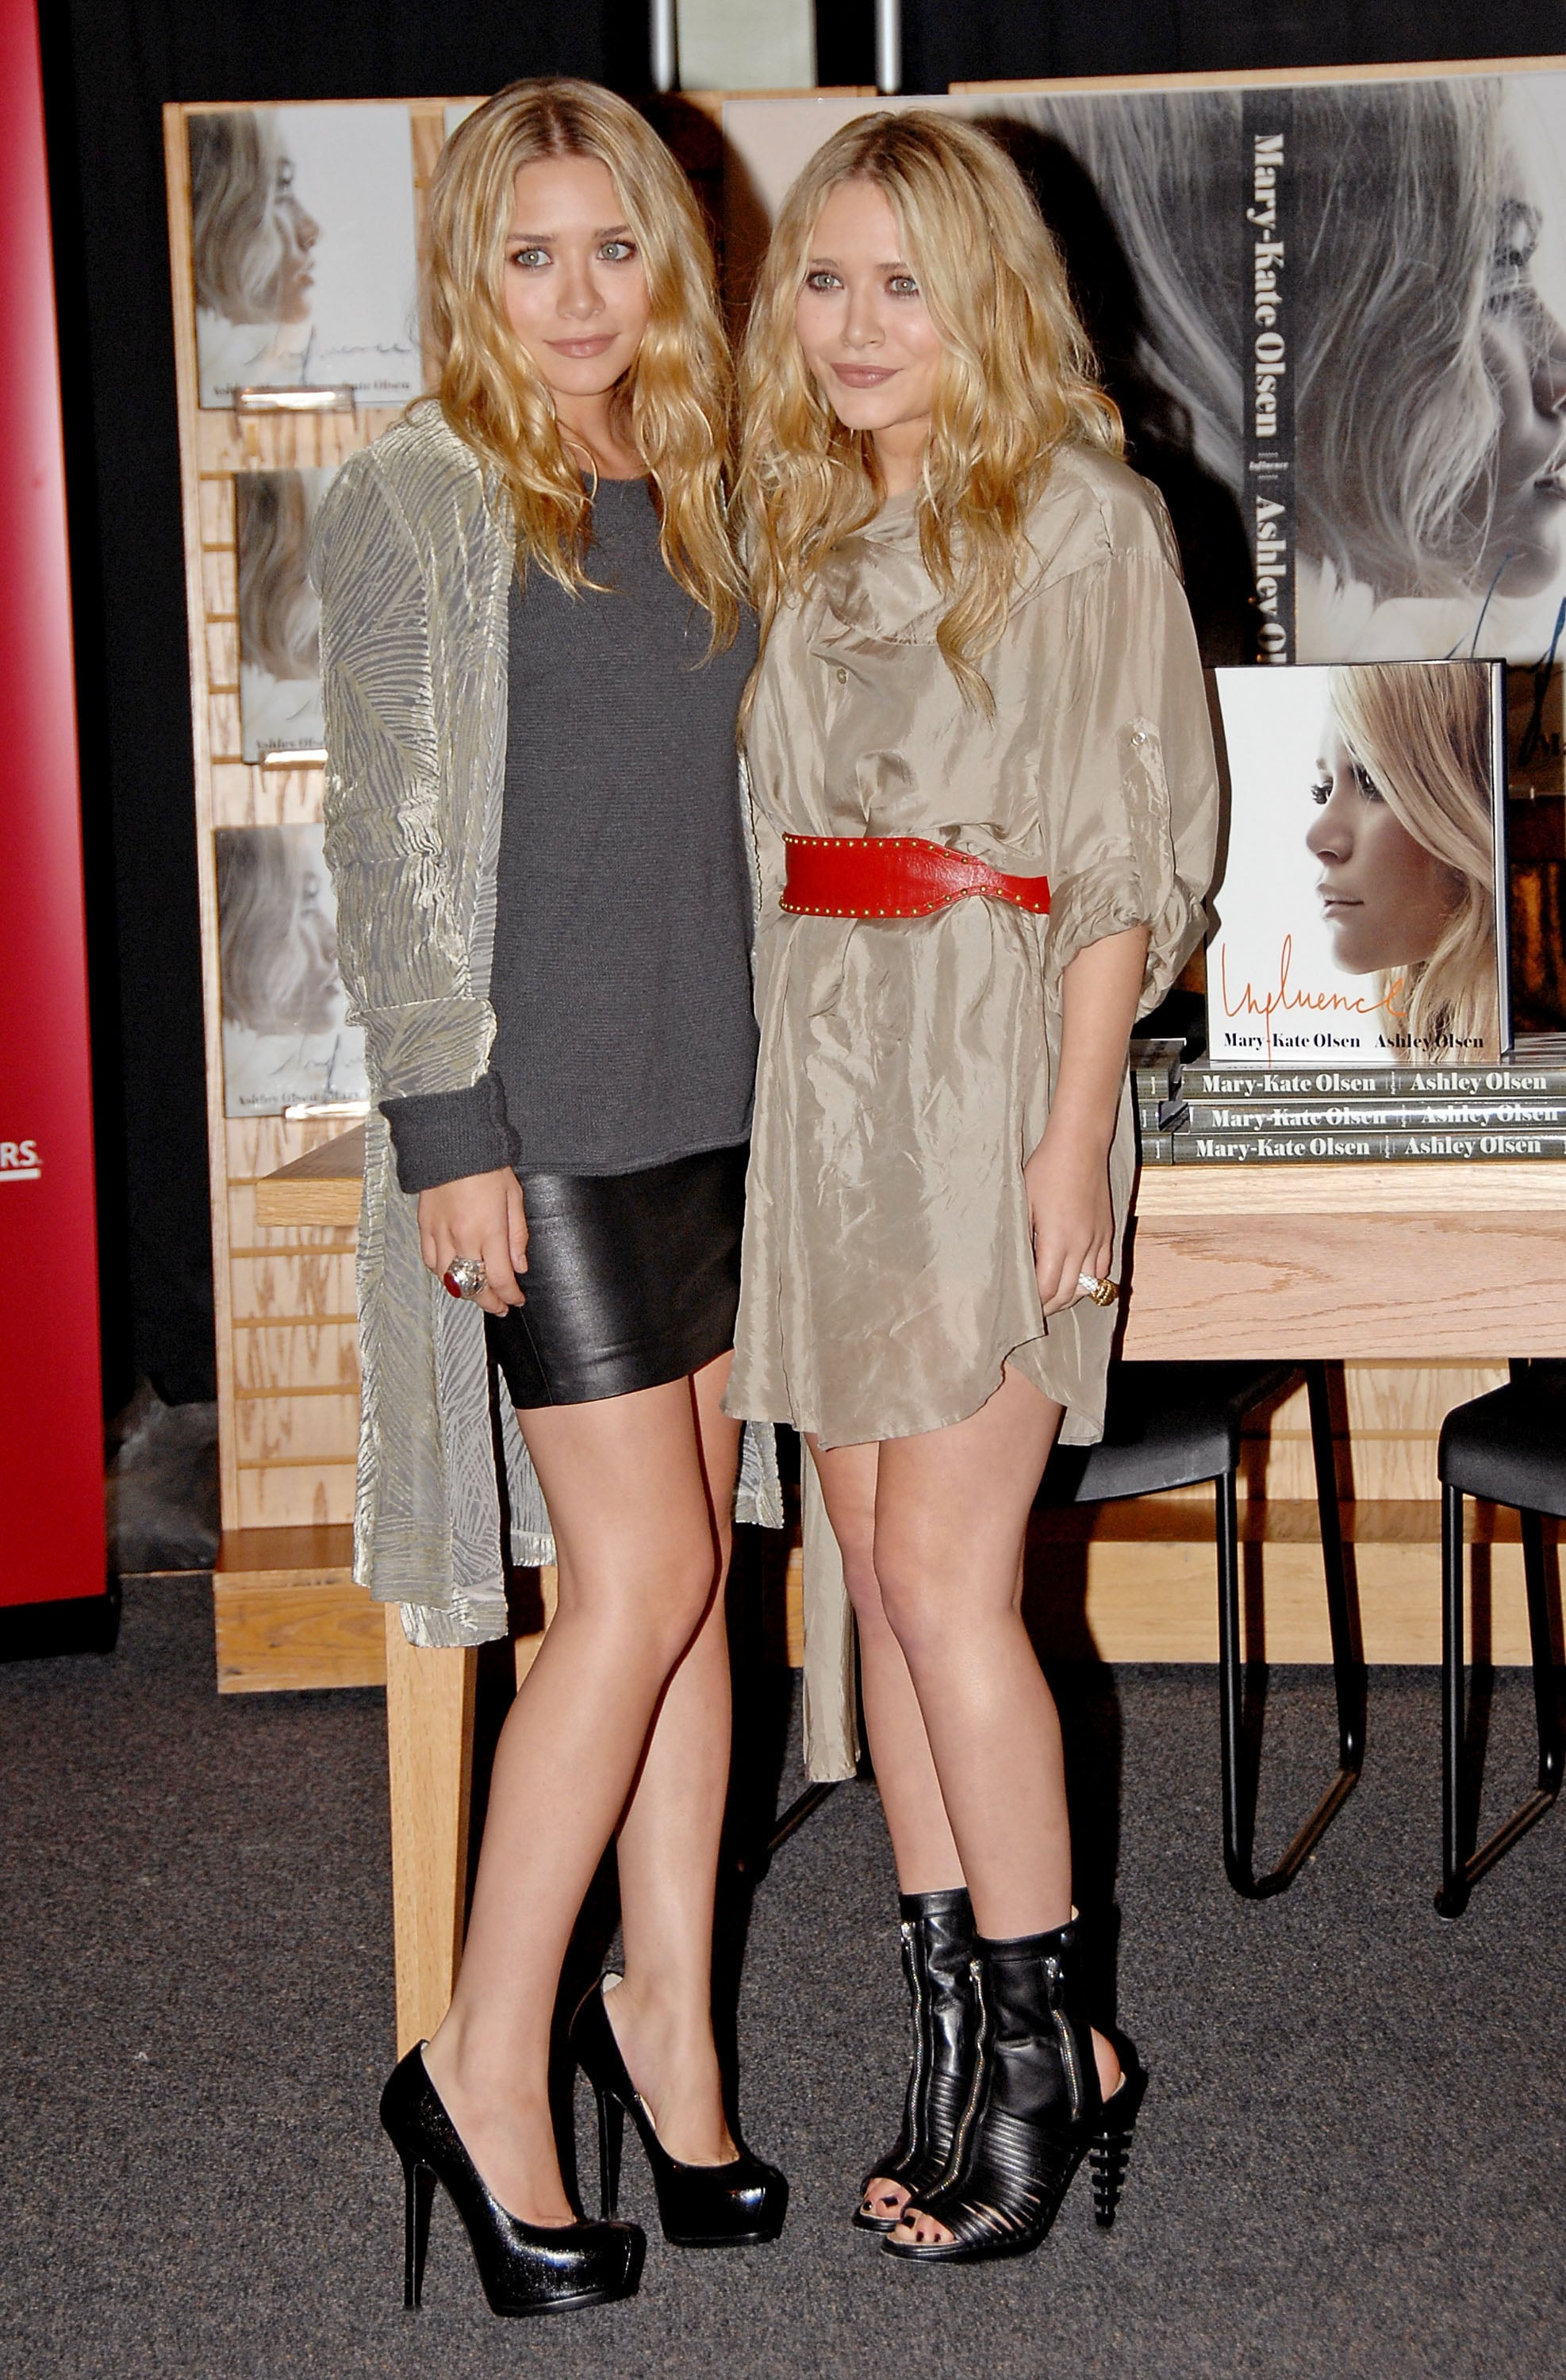 Twinning combo: During a 2008 LA book signing for Influence, the twins turned up the edge with pops of leather.   Ashley wore a velour coat with a charcoal sweater, leather miniskirt, and classic pumps. Mary-Kate paired her shirtdress with a red leather belt and zippered leather peep-toe booties.